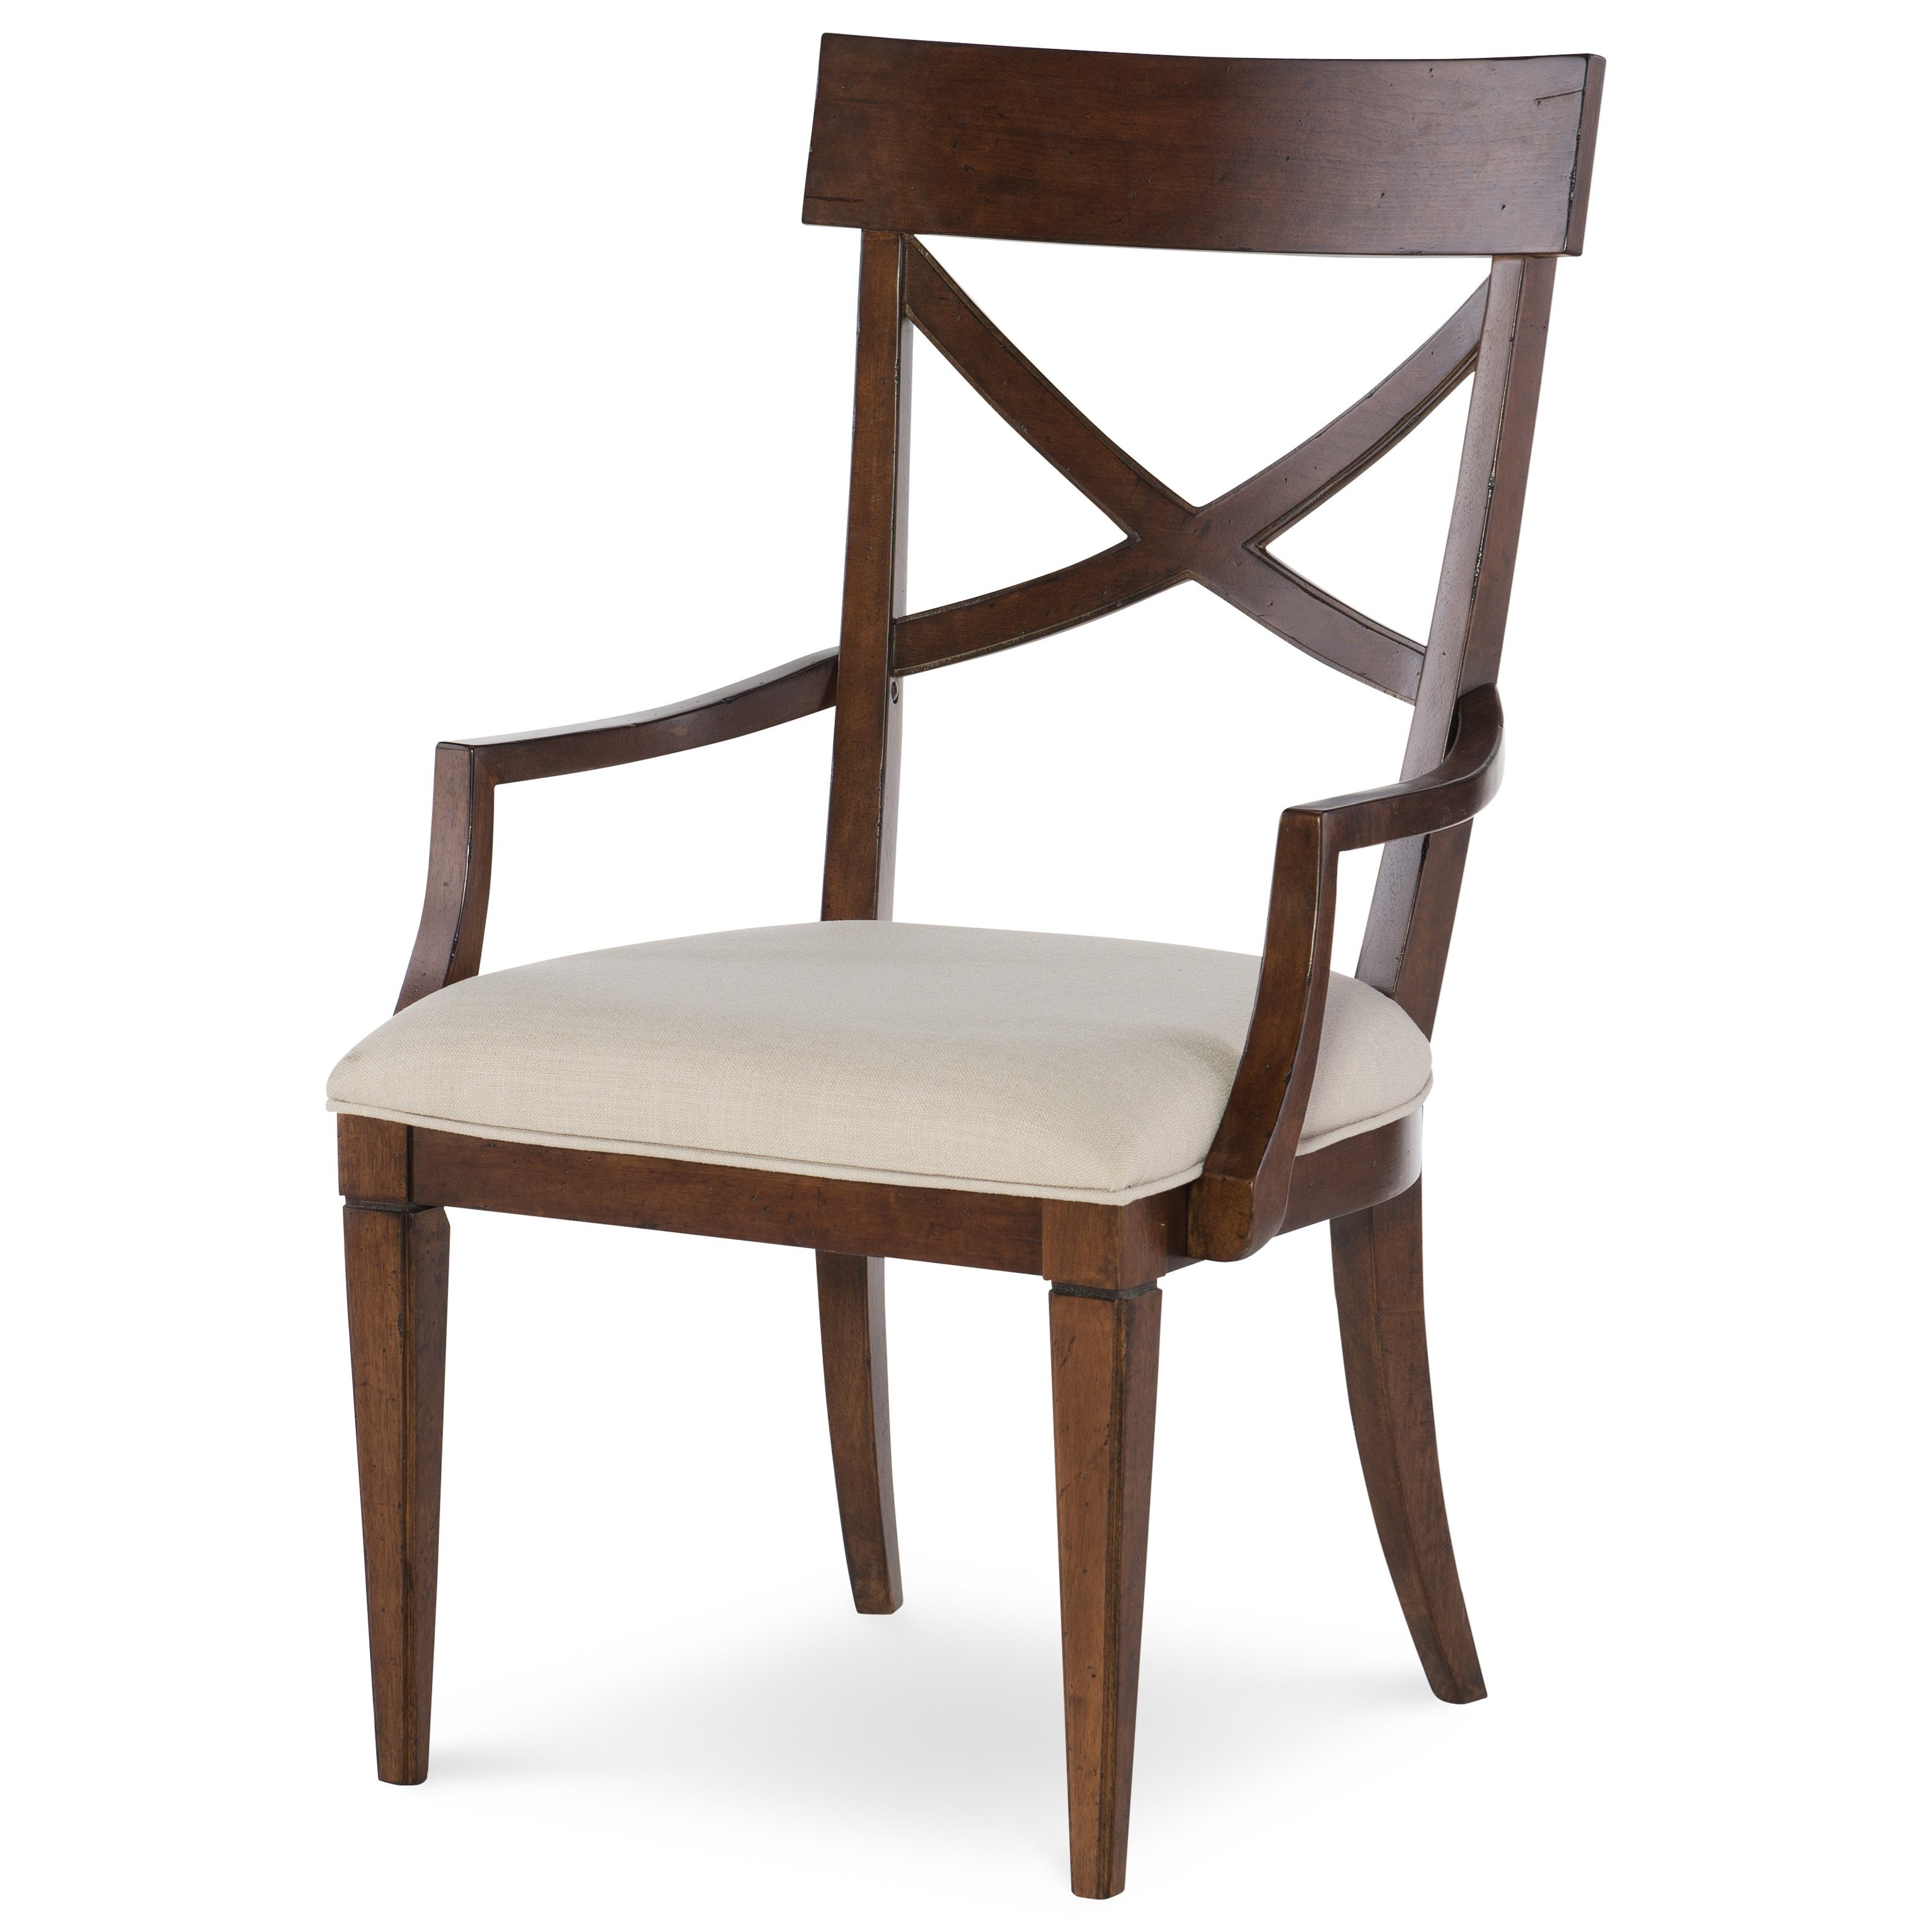 Rachael Ray Home by Legacy Classic Upstate X-Back Arm Chair - Item Number: 6040-241 KD